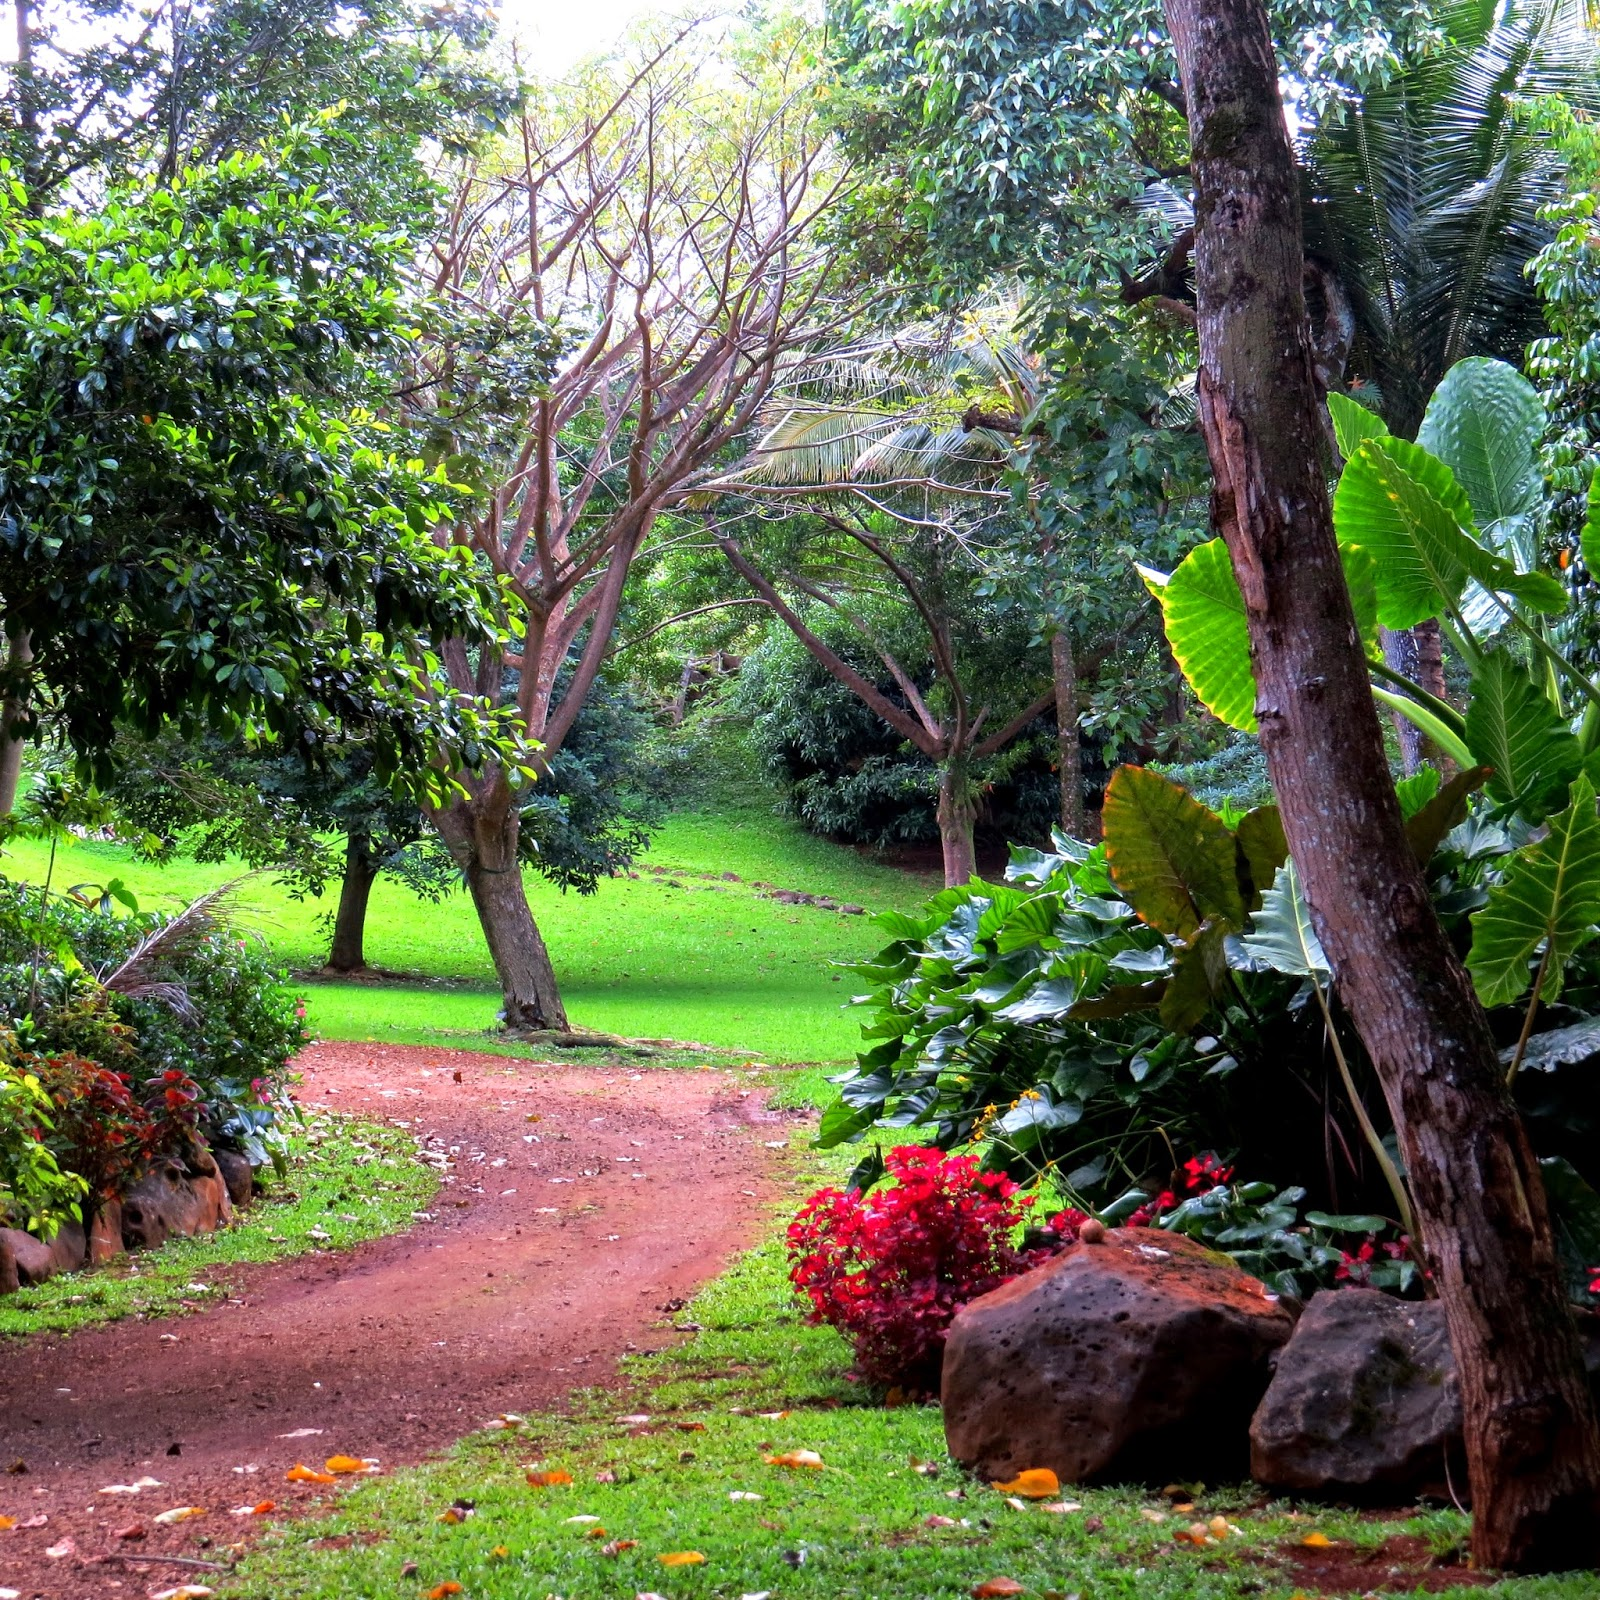 Touring The Princeville Botanical Gardens Was A Fabulous Experience For  Which We Wrote A Positive Review On TripAdvisor. Click Here To Read Our  Review.